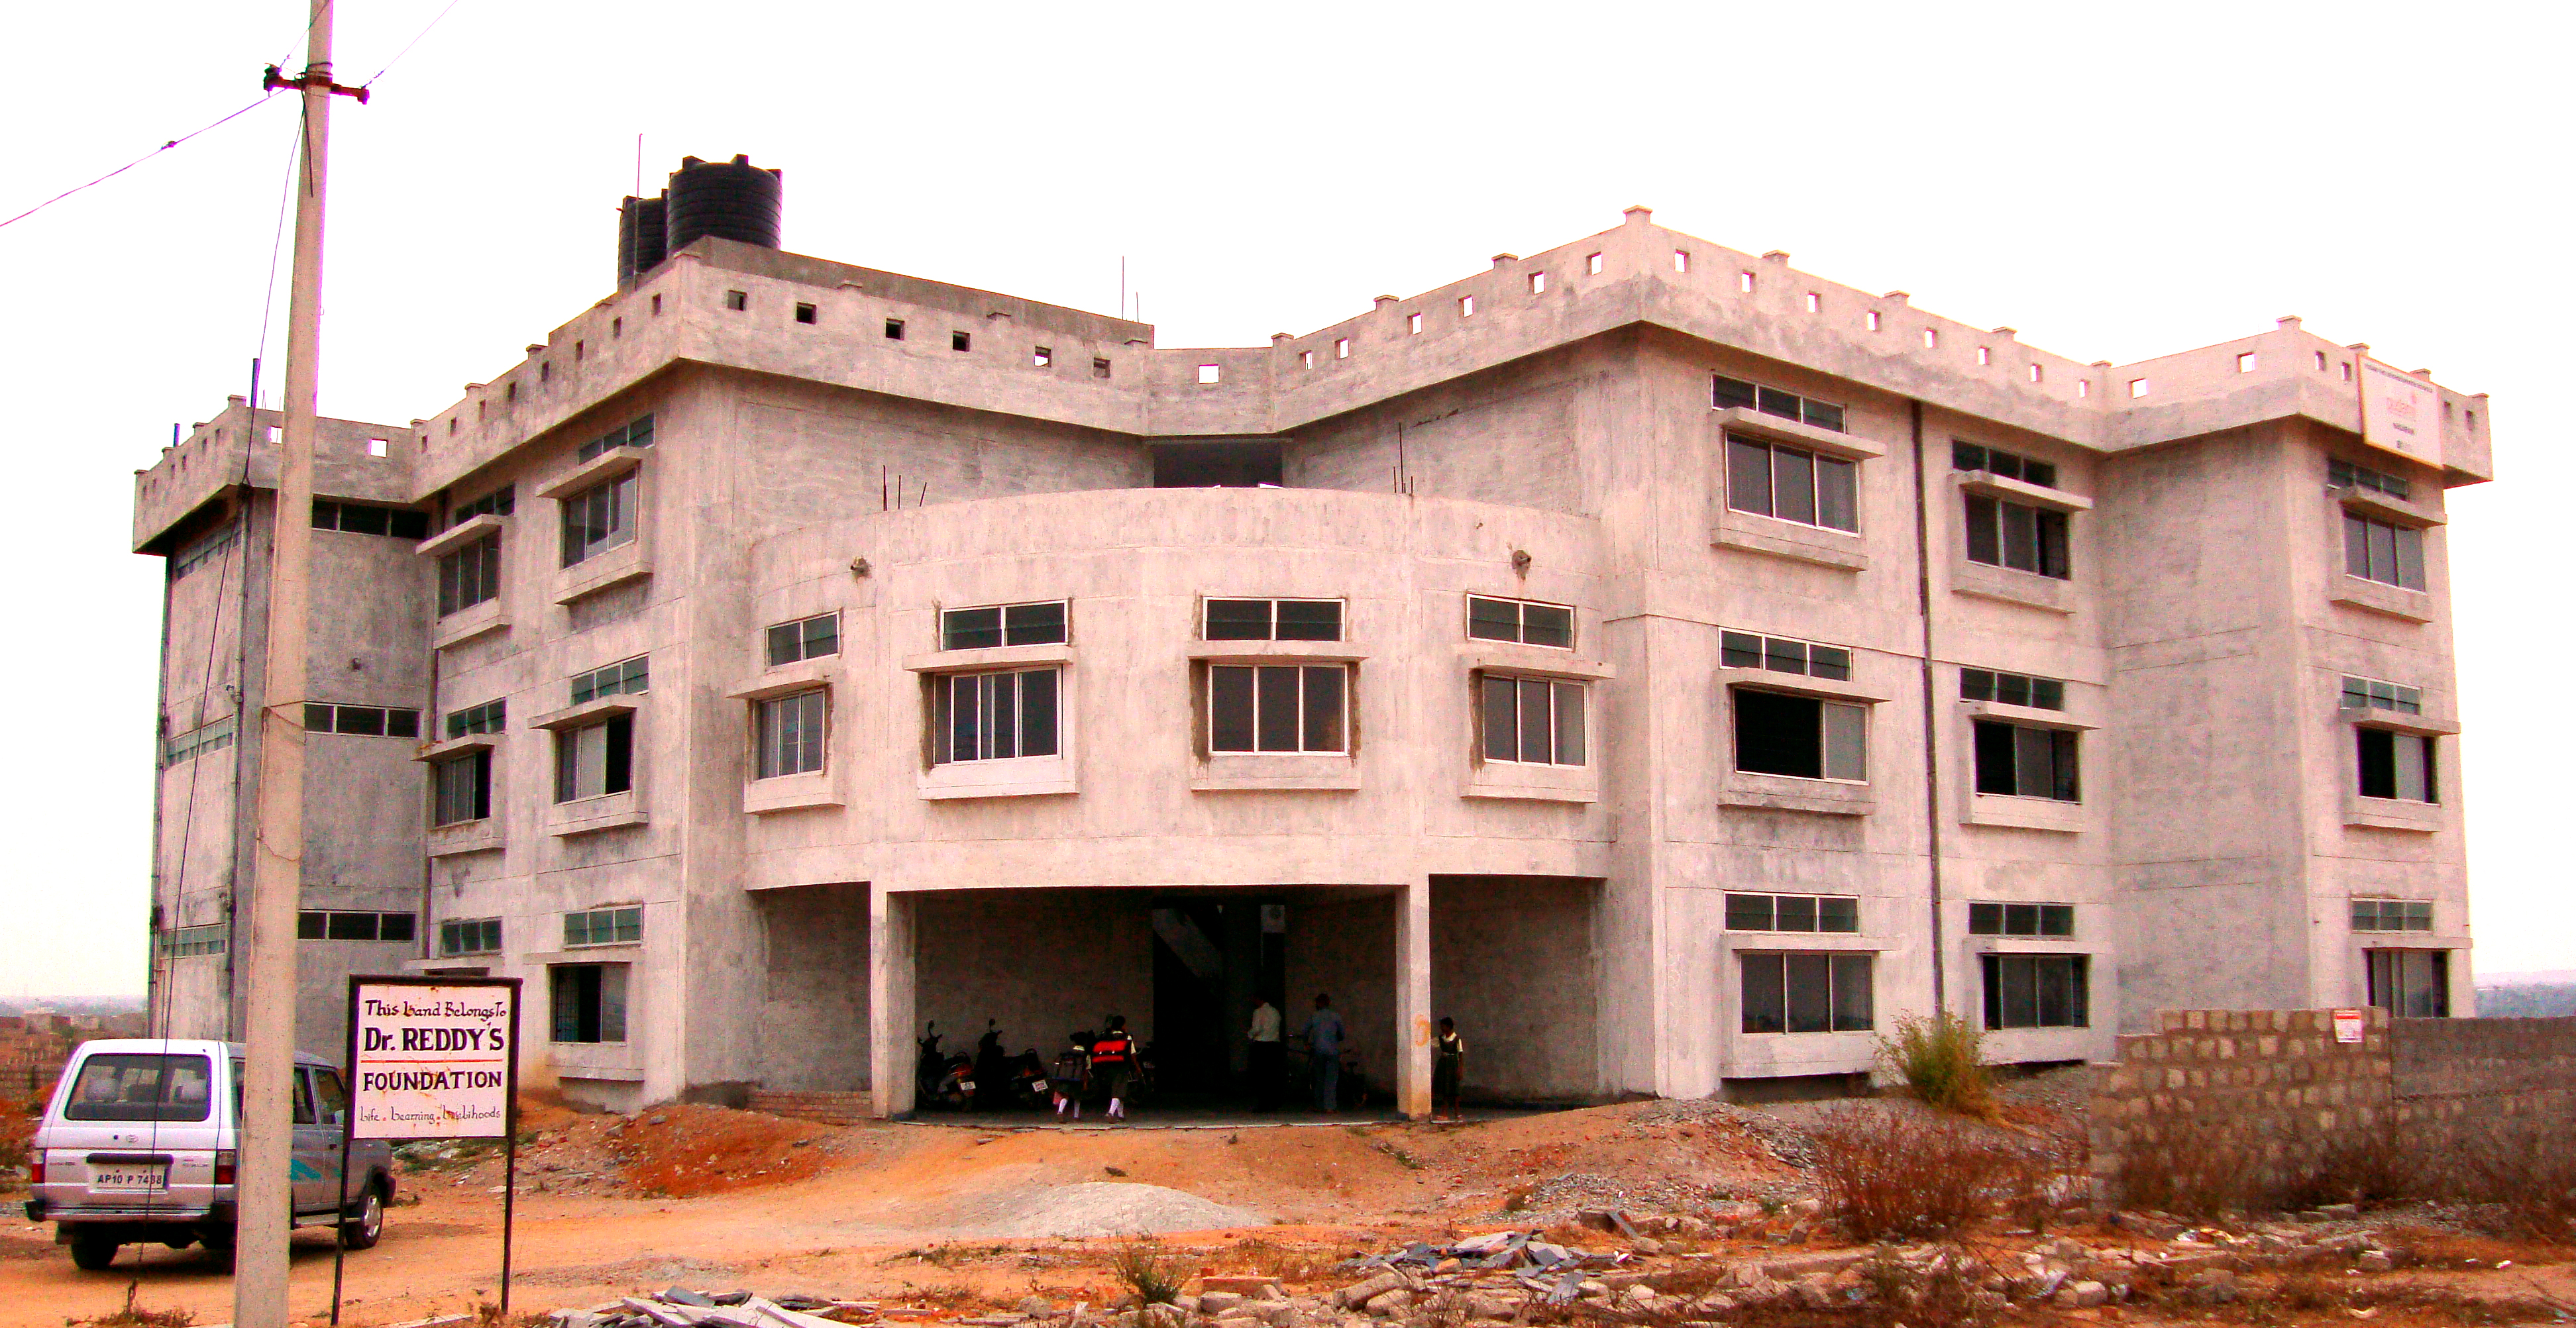 Dr. Reddy's Foundation School